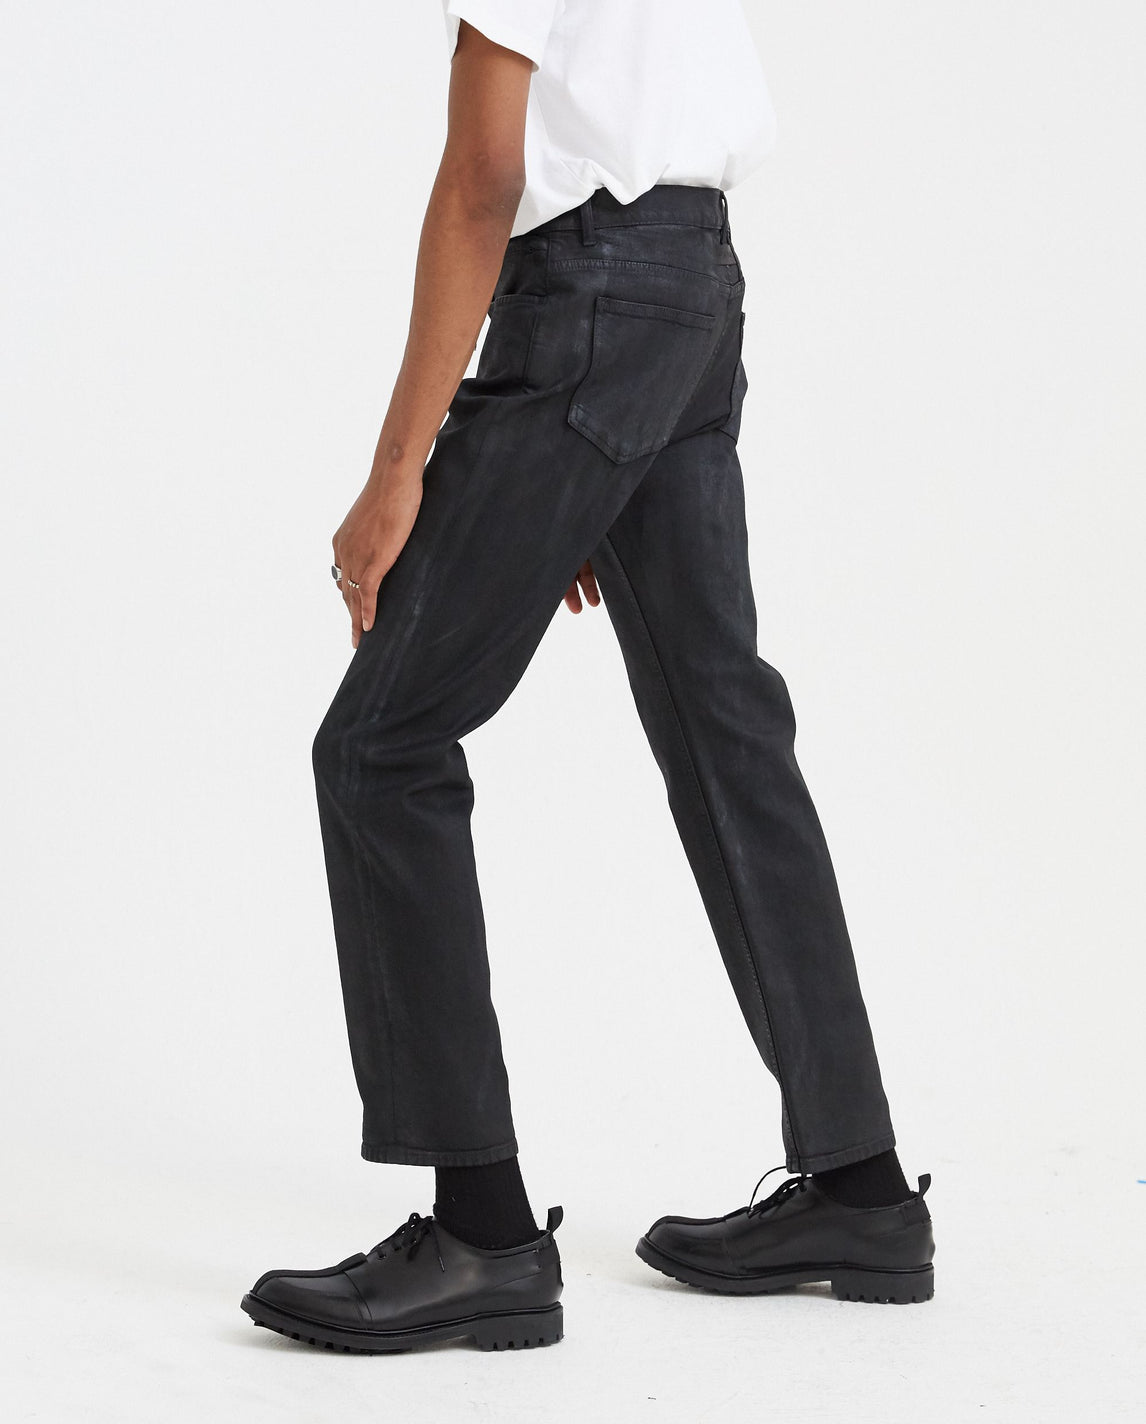 Moonlit 6 Pocket Jeans - Black MENS 1017 ALYX 9SM